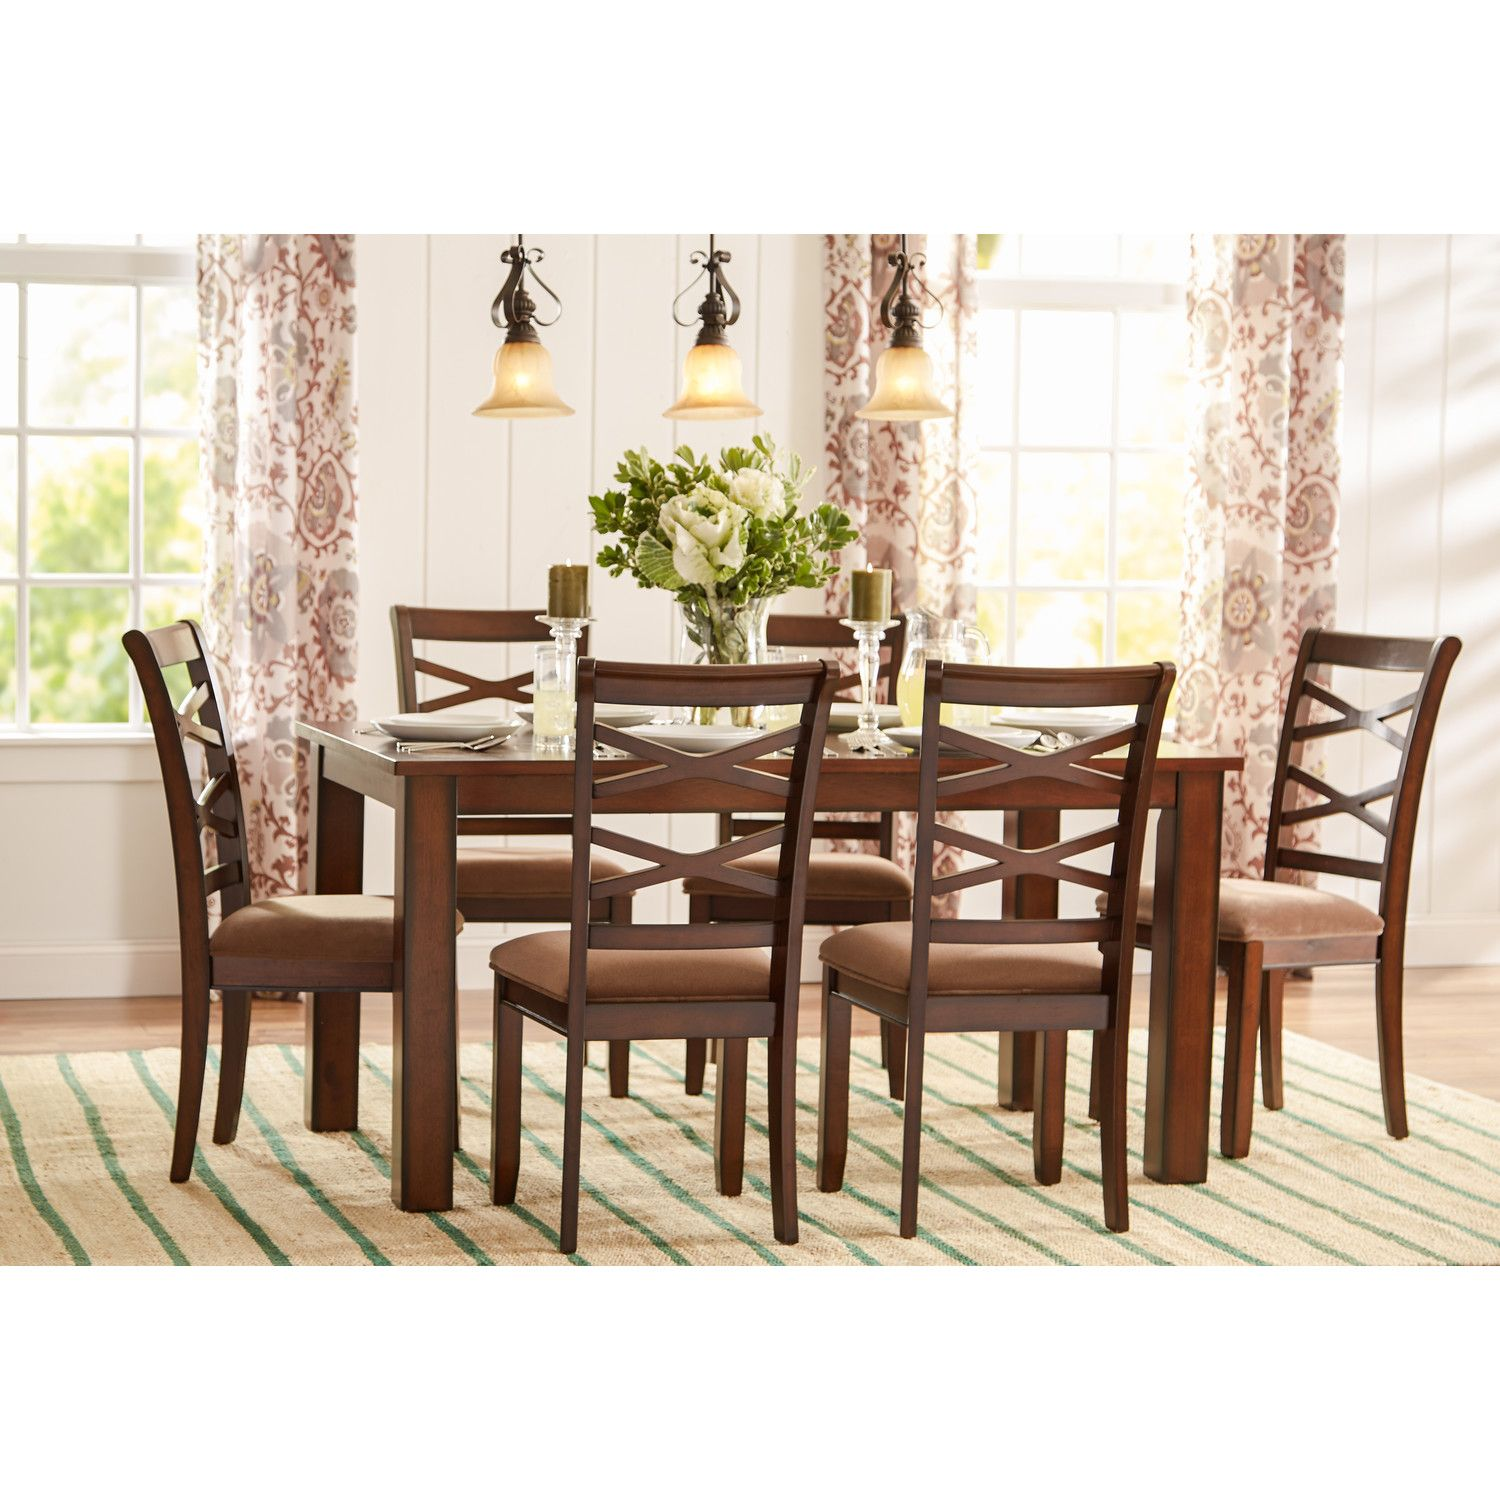 Charmant Three Posts Crossback 7 Piece Dining Set